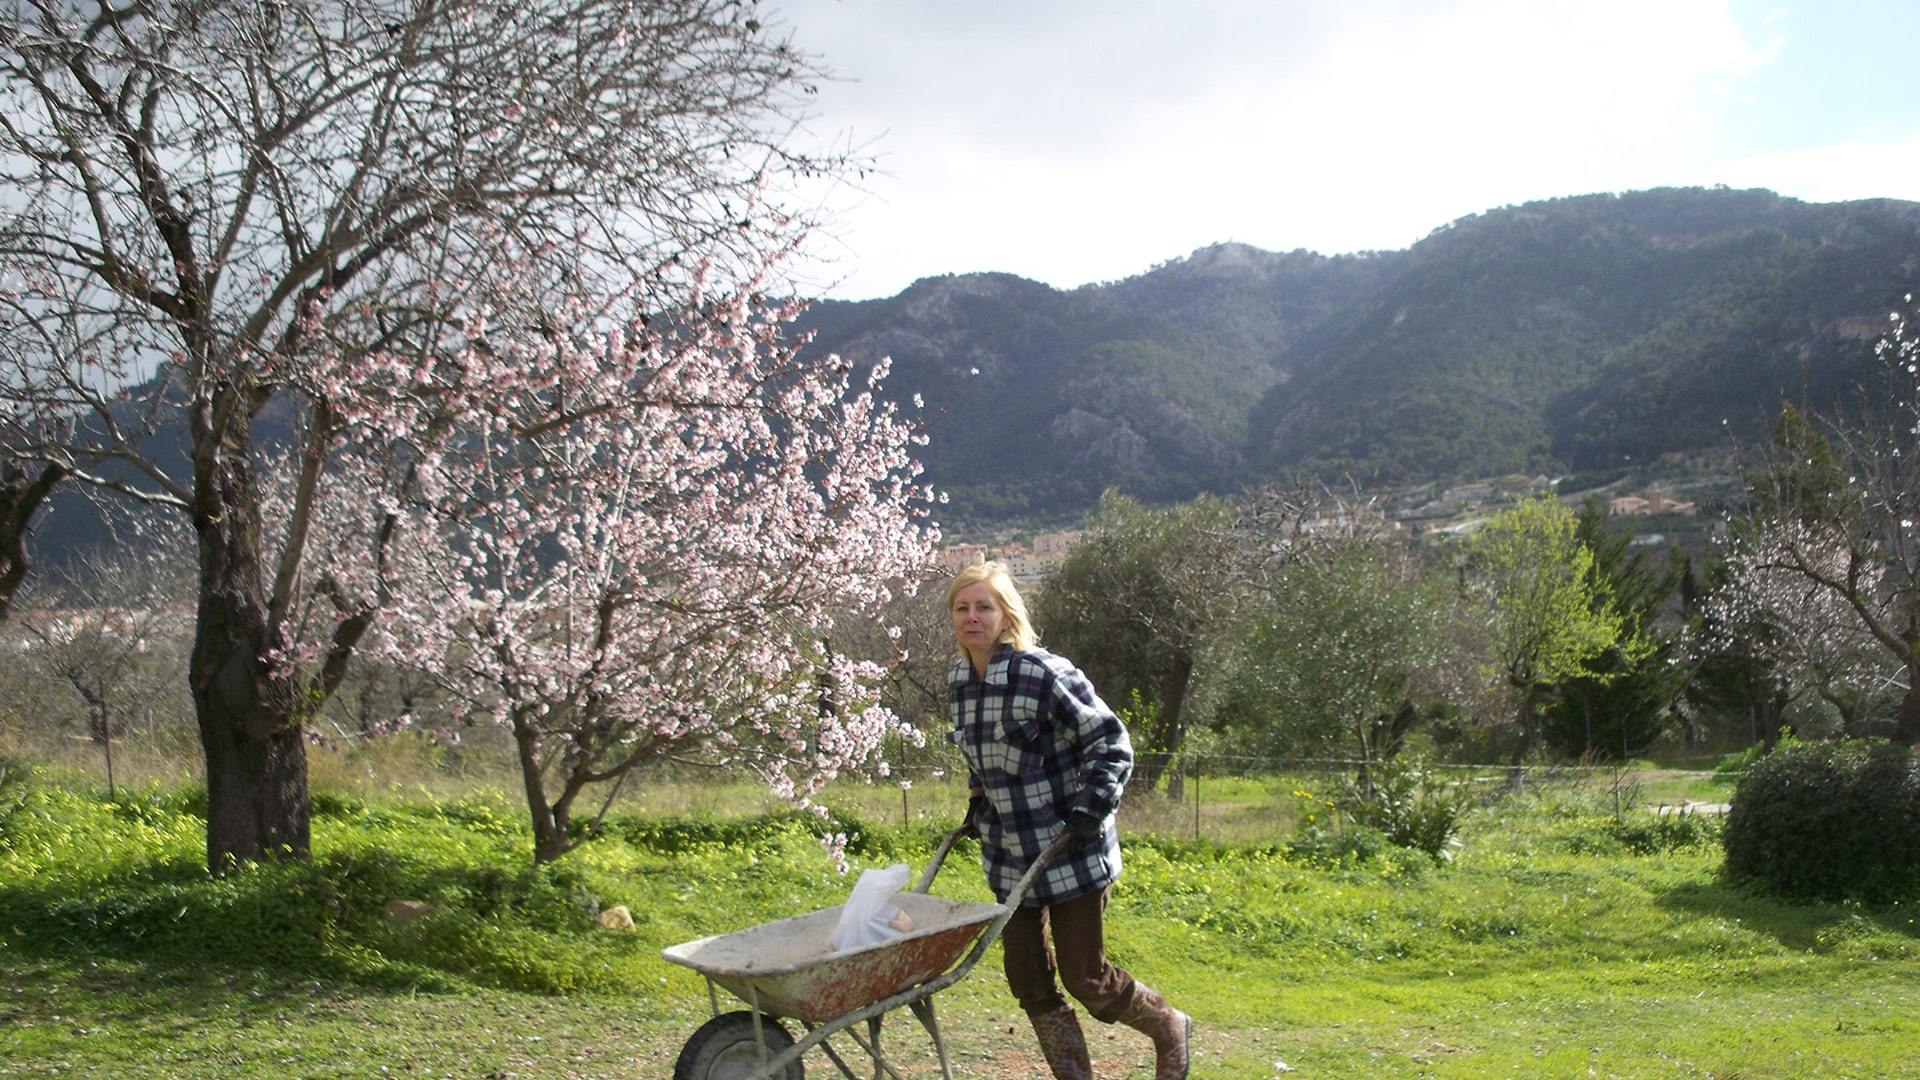 Woman gardenning almond tree blossom Mallorca by Ulla min